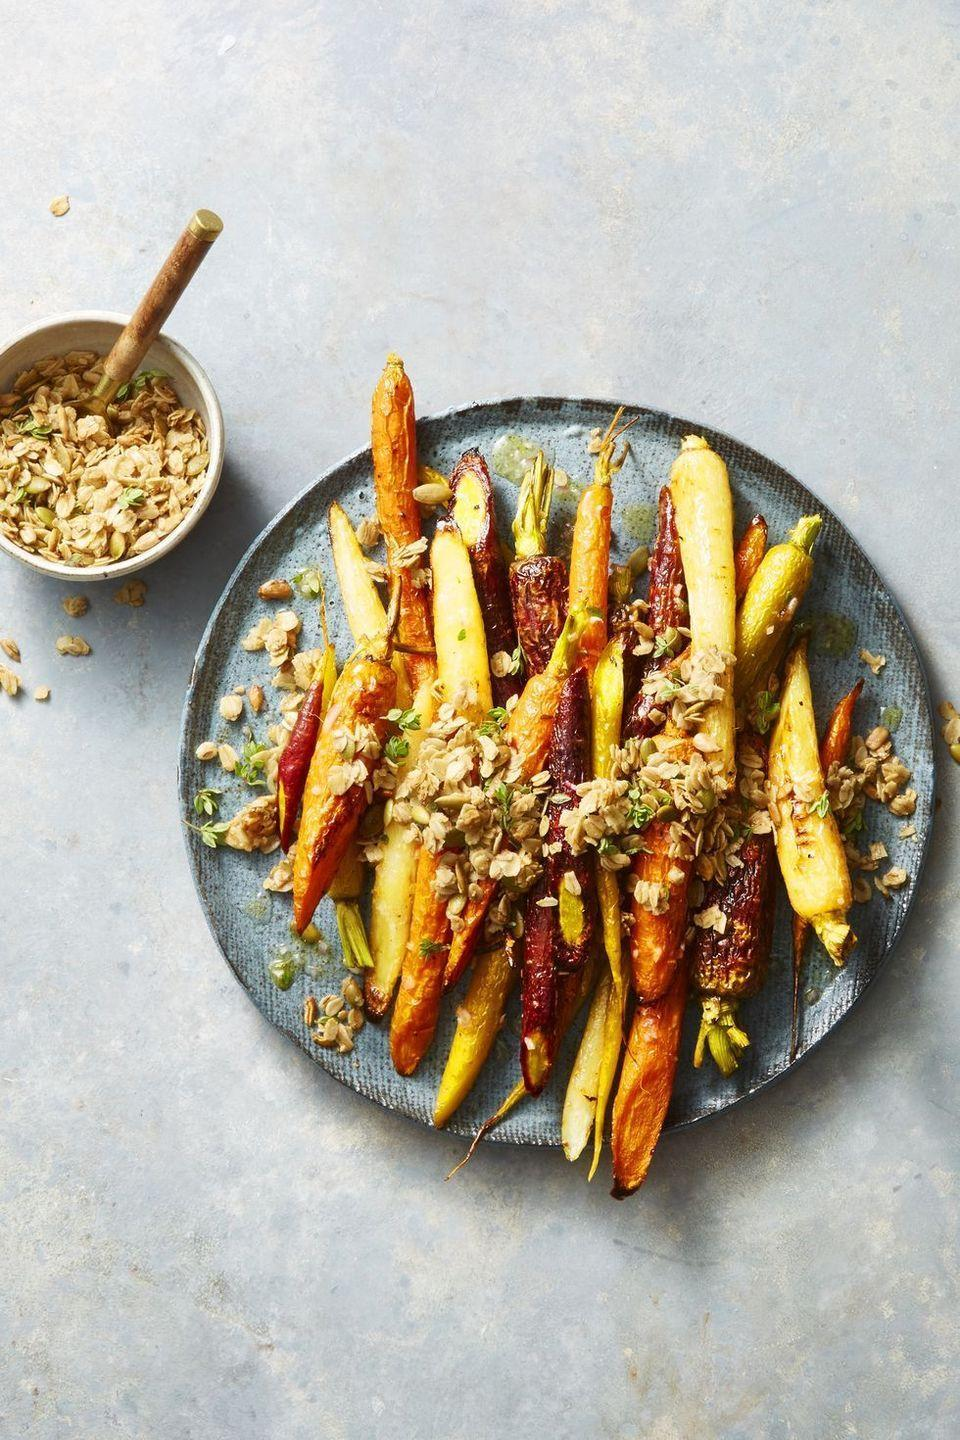 """<p>Carrots don't need butter to be delicious. This crunchy, nutty, granola-topped recipe is so good, it may even overshadow the main course.</p><p><em><a href=""""https://www.goodhousekeeping.com/food-recipes/easy/a22750582/roasted-carrots-with-cumin-thyme-granola-recipe/"""" rel=""""nofollow noopener"""" target=""""_blank"""" data-ylk=""""slk:Get the recipe for Roasted Carrots with Cumin-Thyme Granola »"""" class=""""link rapid-noclick-resp"""">Get the recipe for Roasted Carrots with Cumin-Thyme Granola »</a></em> </p>"""